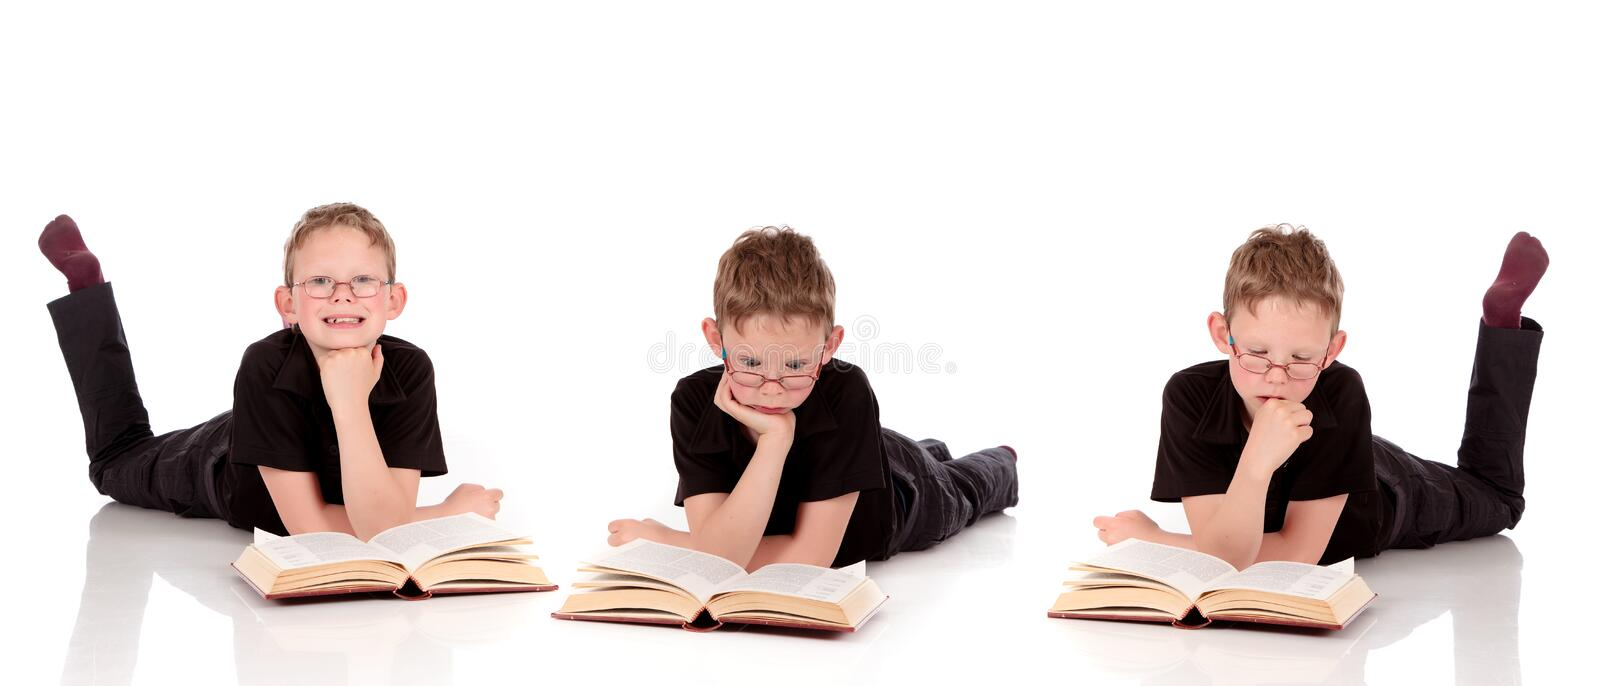 Various Poses Young Child Book Stock Photo